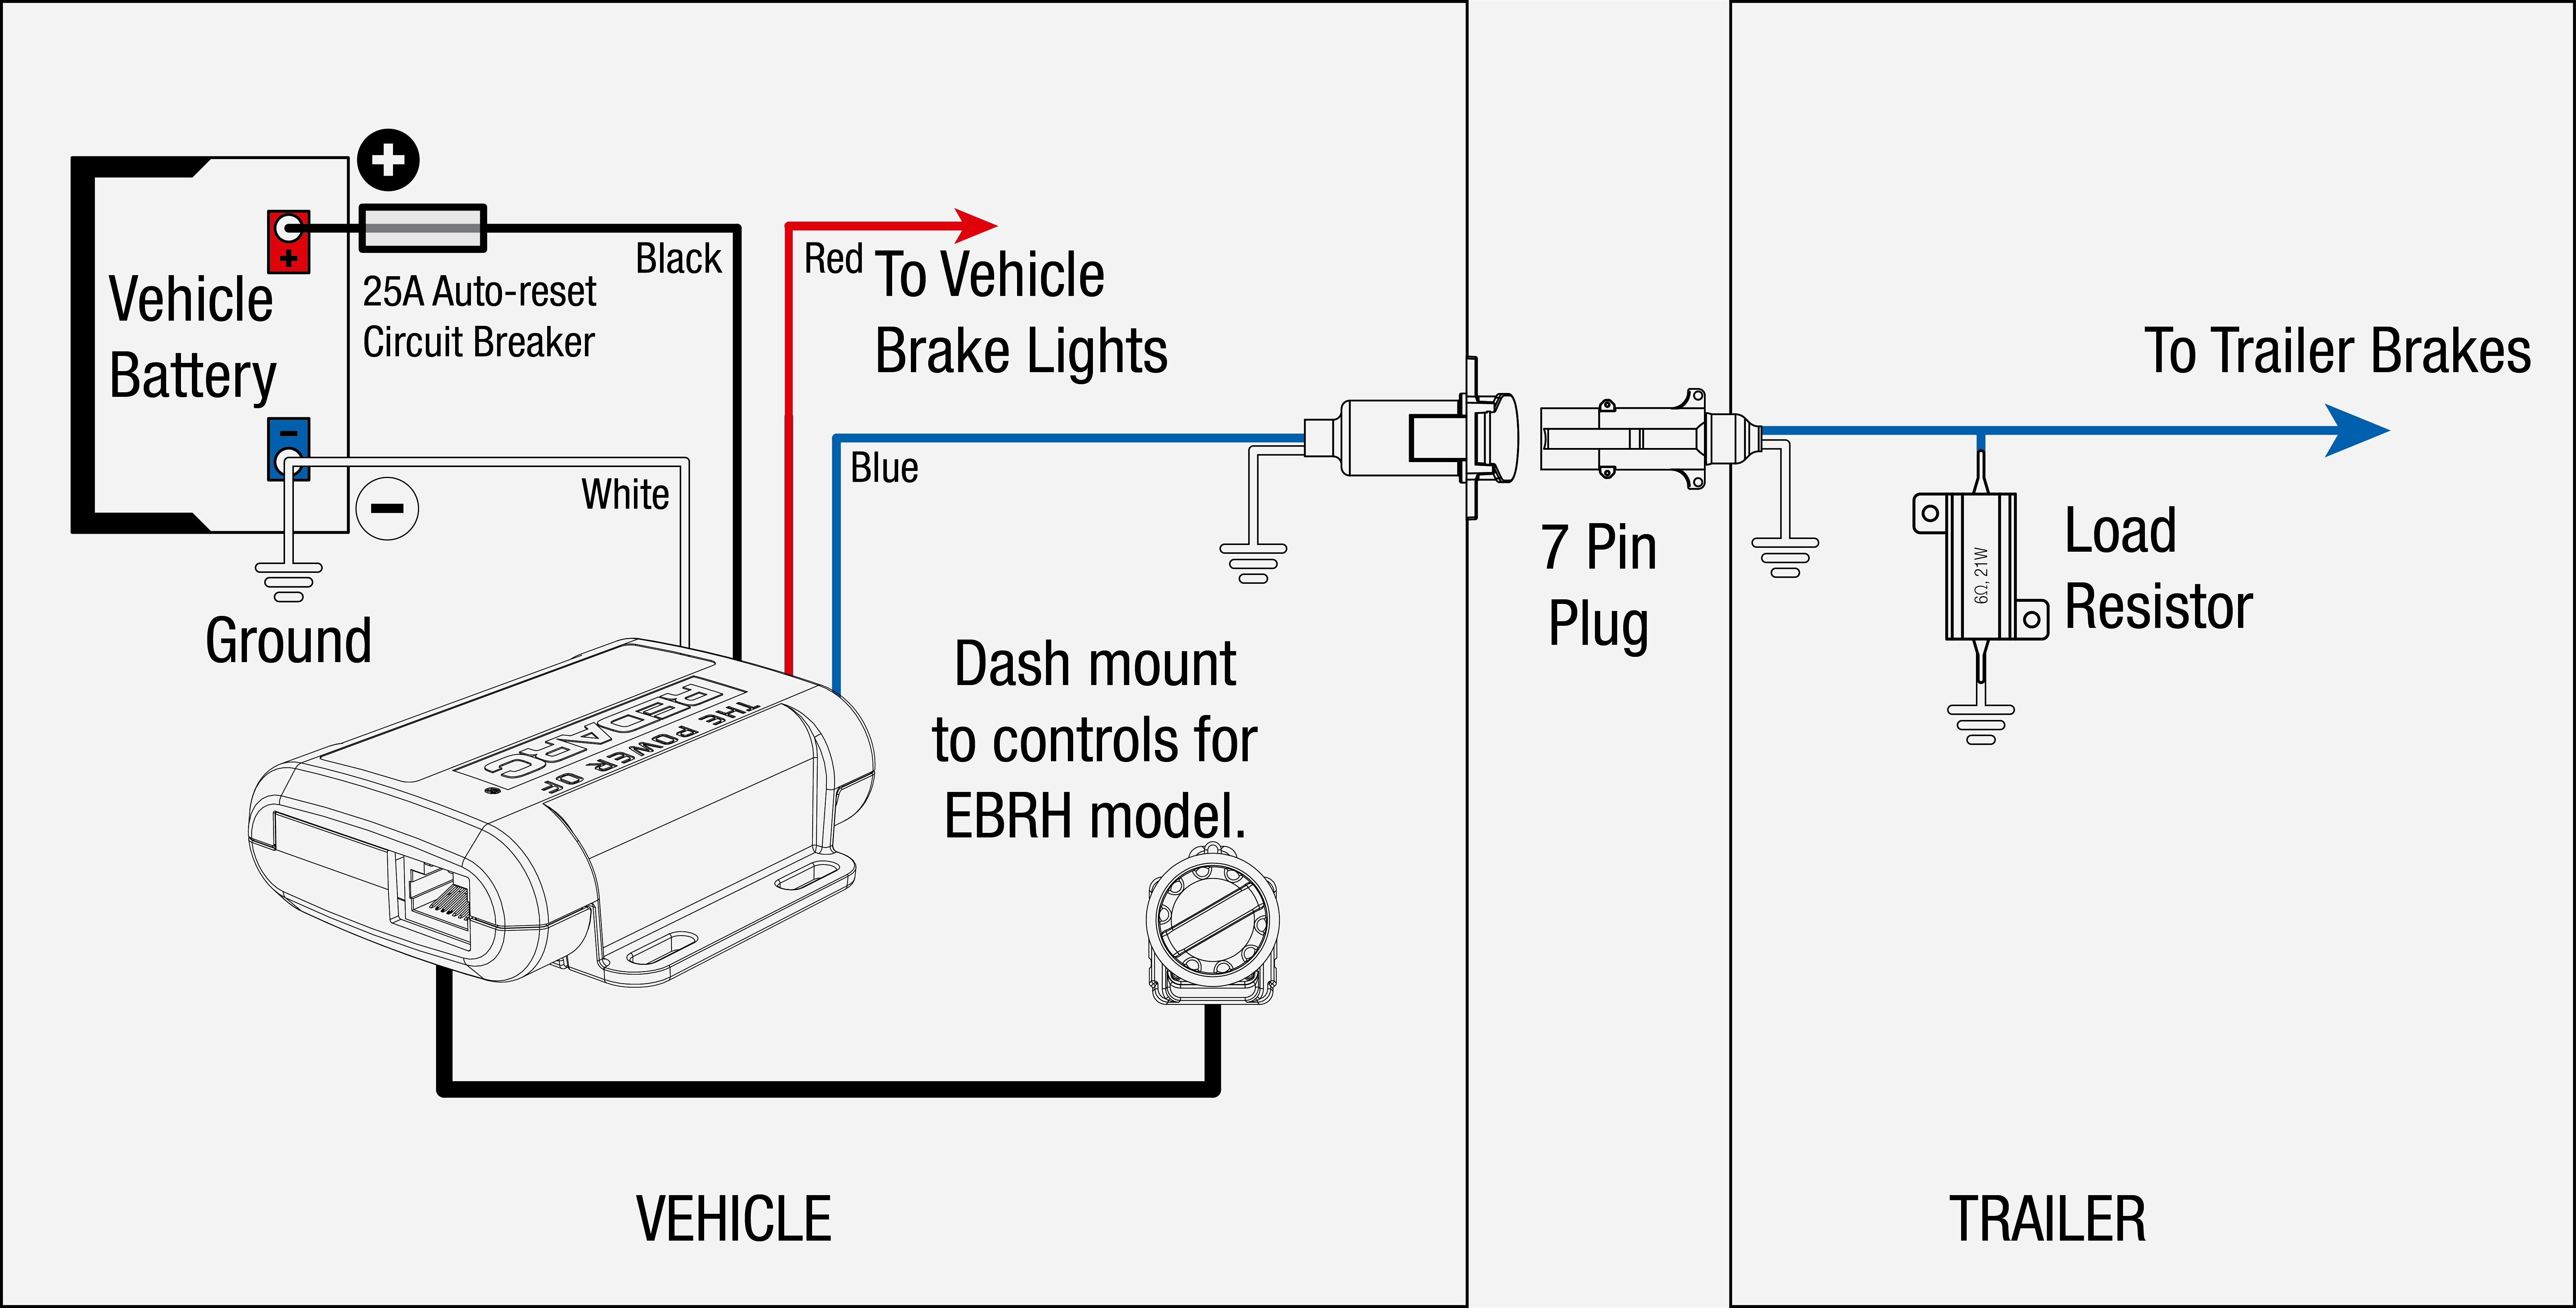 Trailer Wire Harness Diagram Trailer Wiring Diagram Electric Brakes within Brake Controller Of Trailer Wire Harness Diagram